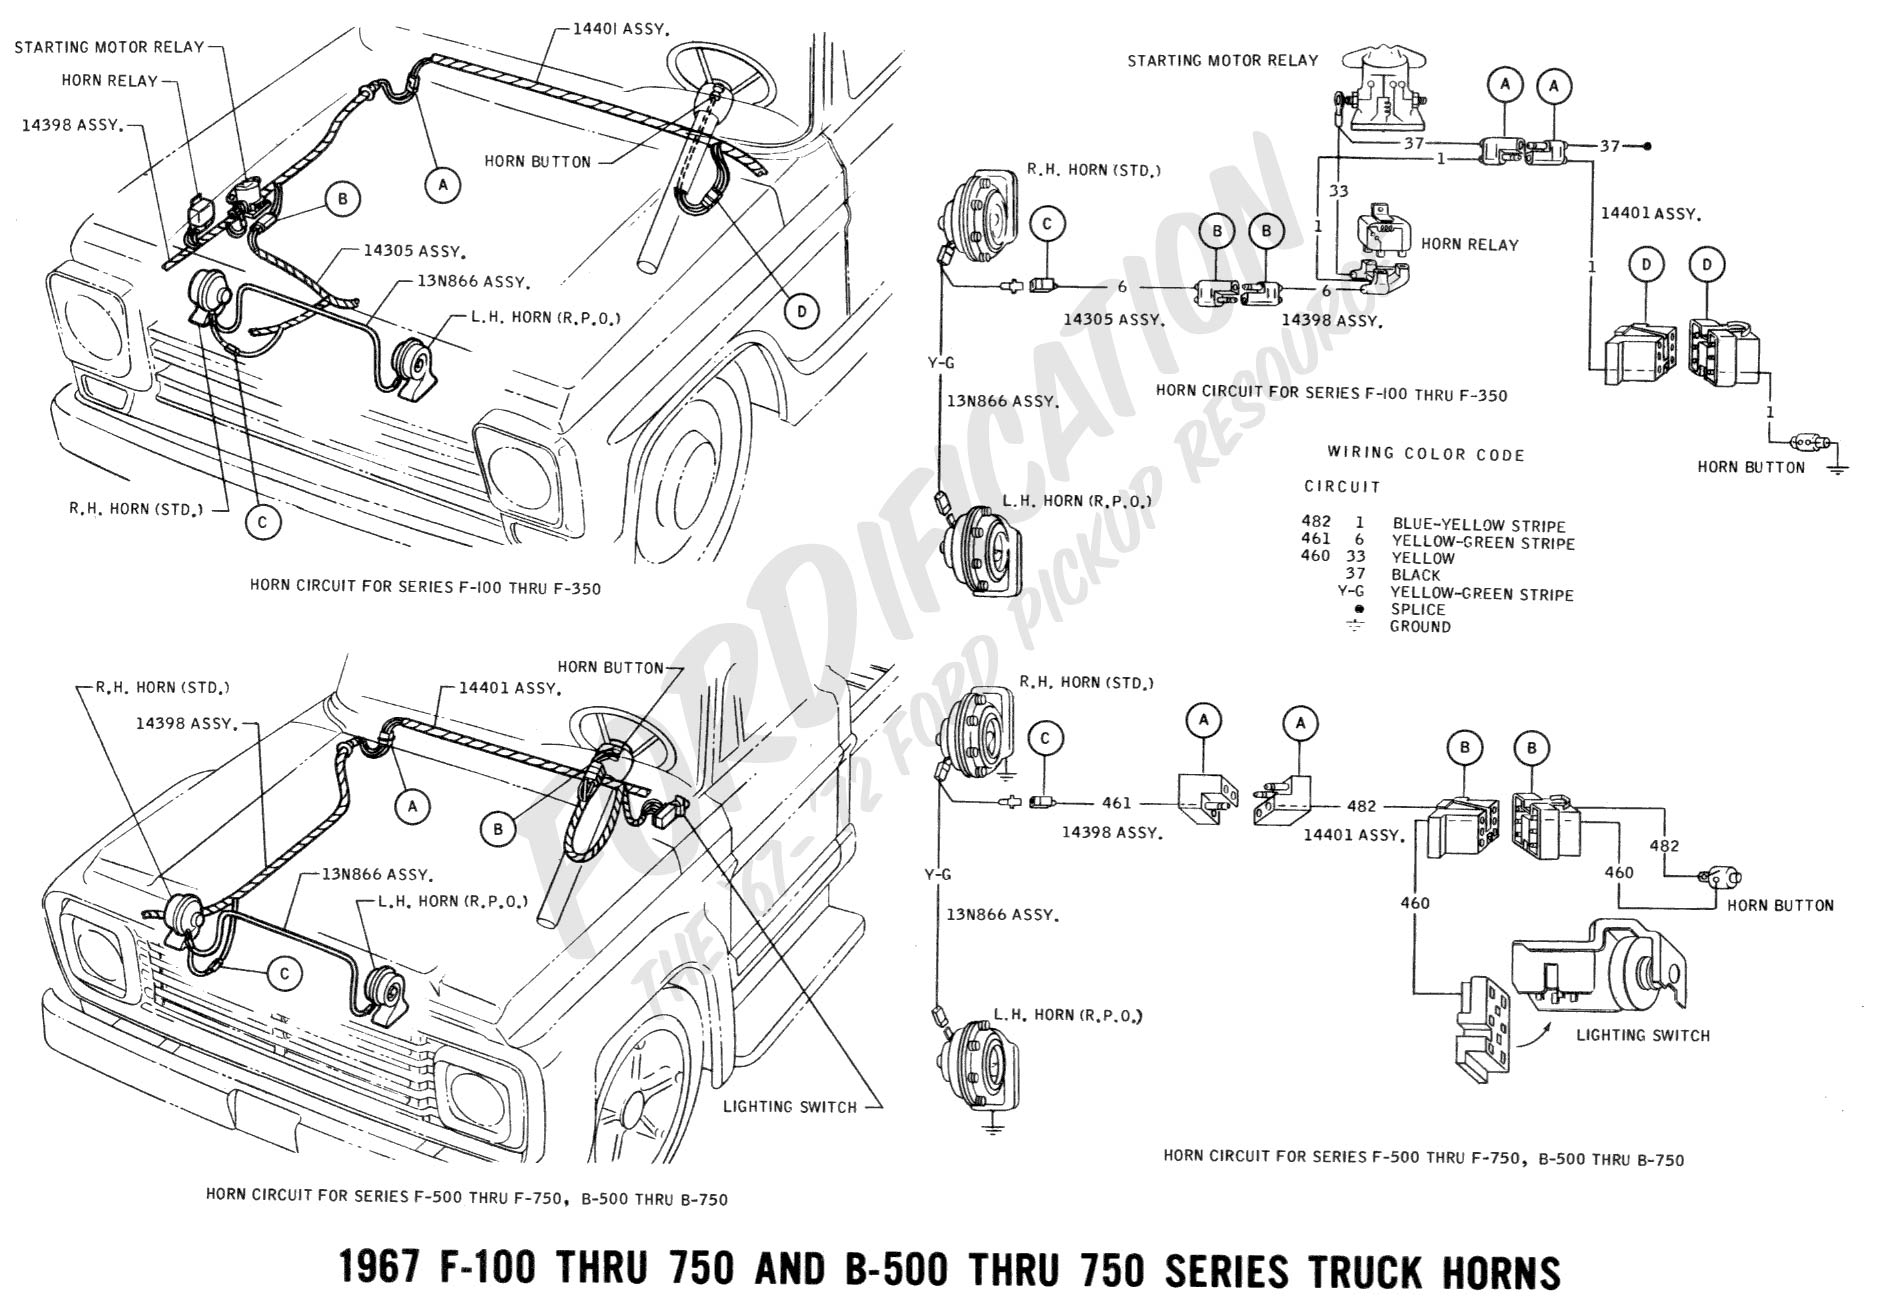 63 Chevy Impala Wiring Diagram moreover Ford F250 Wiring Diagram Online besides 67 Camaro Horn Button Diagram furthermore 1958 Chevy Truck Turn Signal Wiring Diagram in addition 4zyjr Chevrolet C20 4x2 Battery Alternator Checked. on 1965 c10 headlight switch wiring diagram